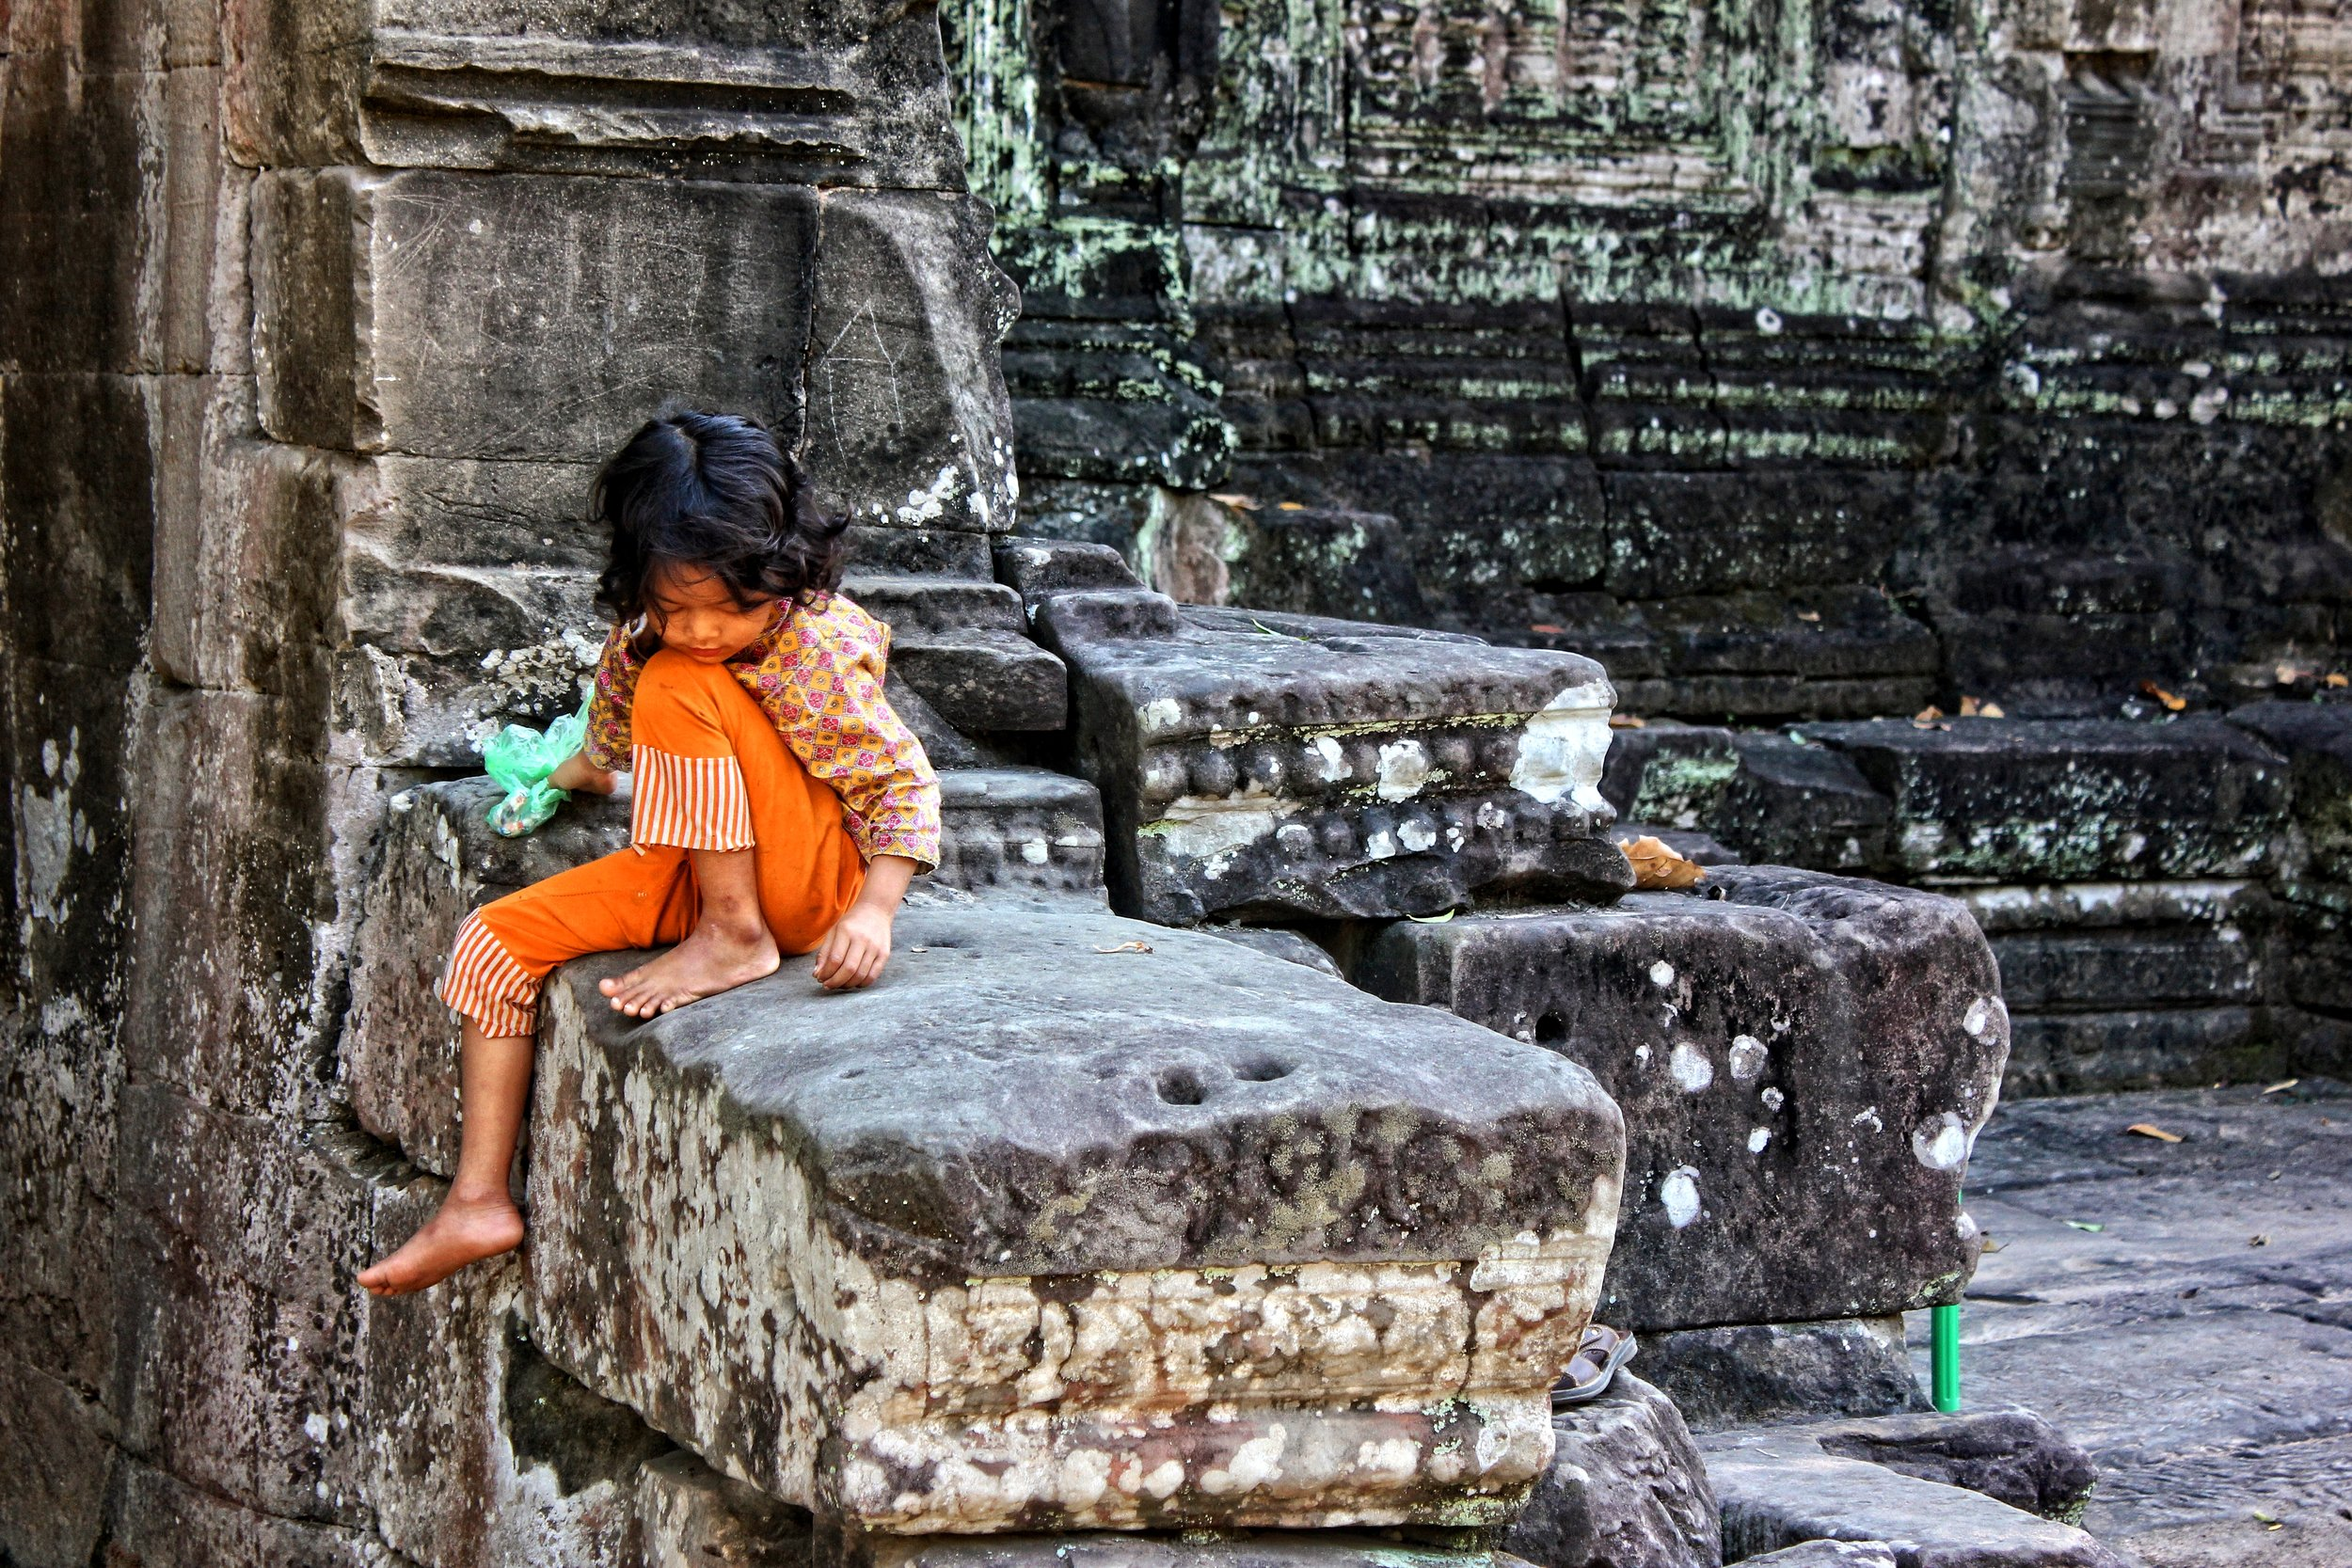 A girl waits to ask for money as travelers pass by her at Angkor Wat.